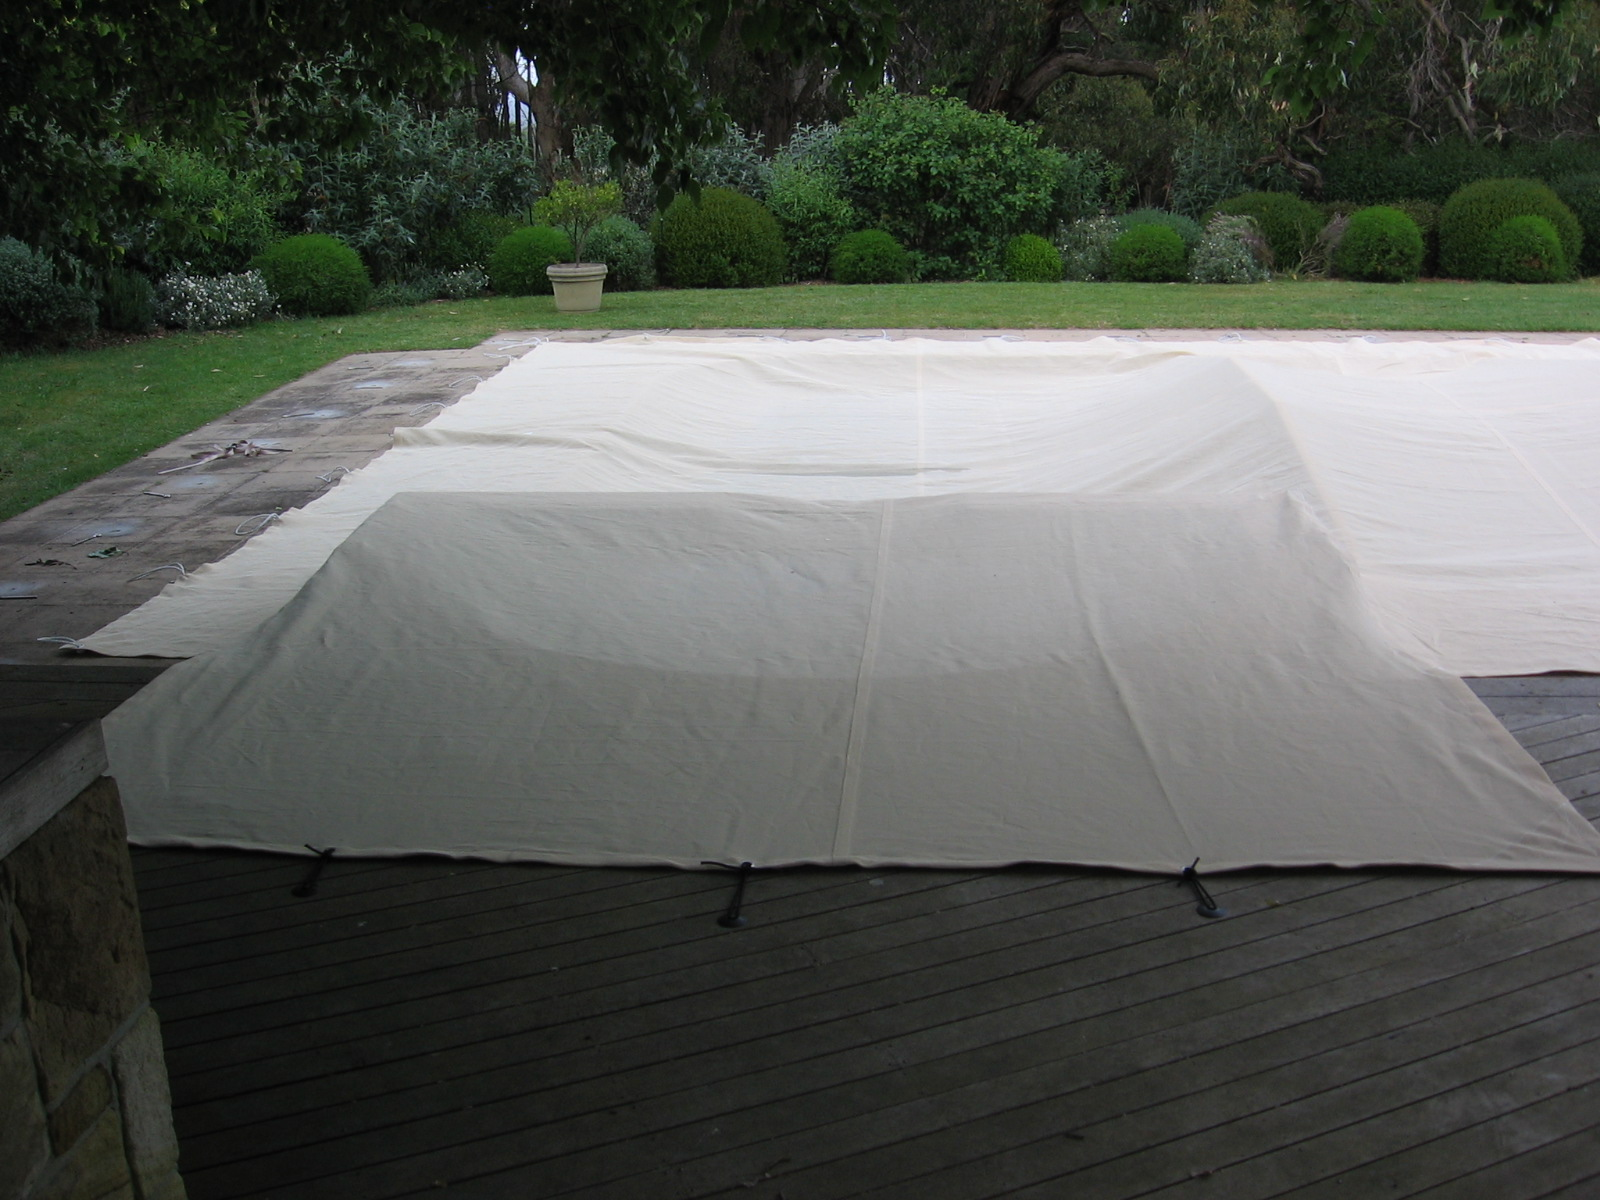 Custom boat covers and traps : boat canopies melbourne - memphite.com